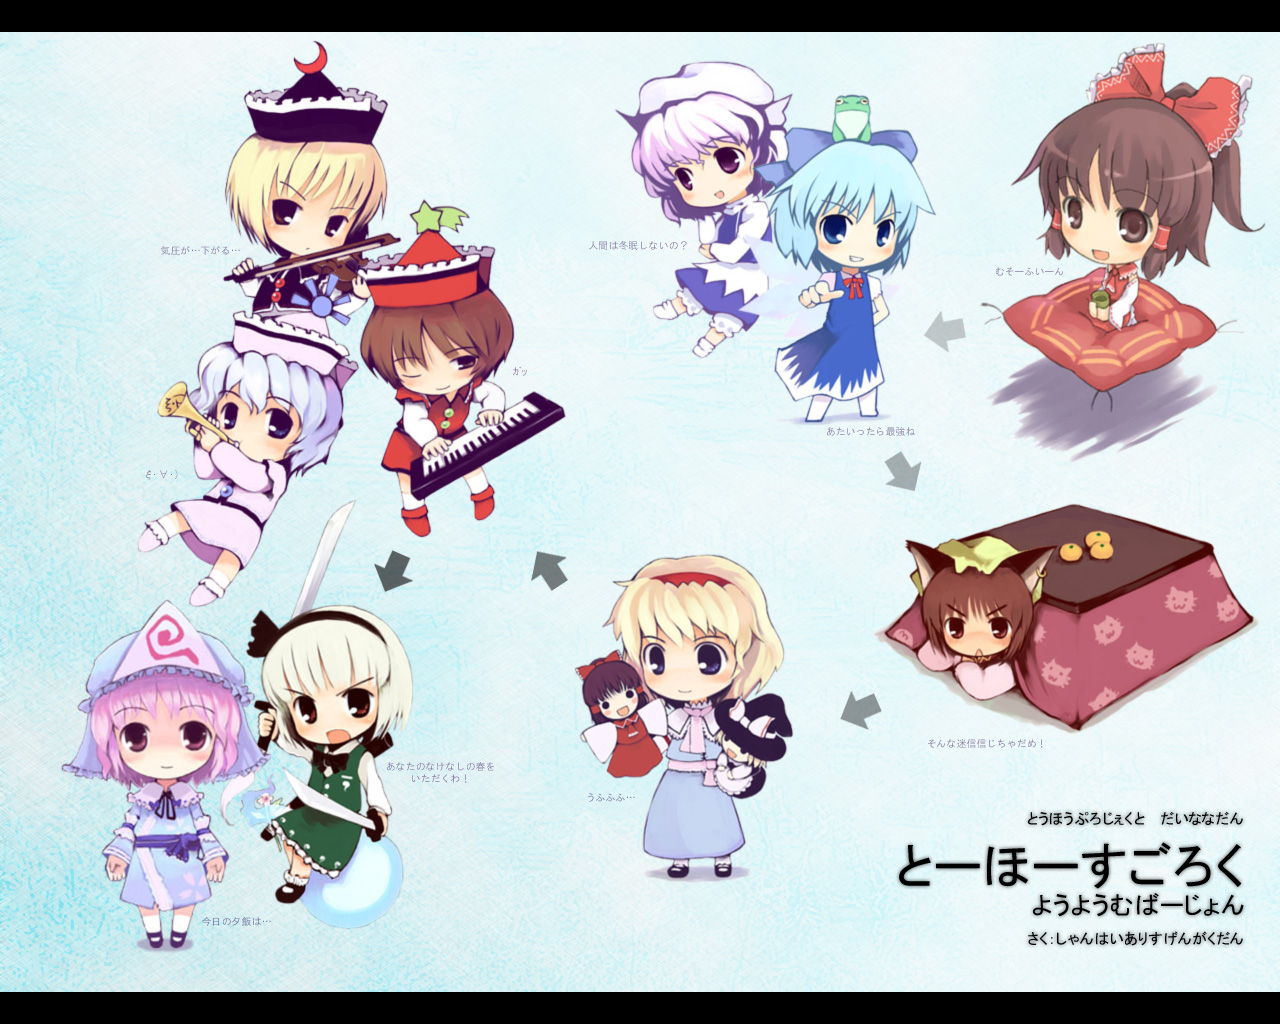 alice_margatroid animal_ears blonde_hair blue_eyes blue_hair brown_eyes brown_hair catgirl chen chibi cirno doll dress fairy gray_hair hakurei_reimu hat japanese_clothes katana konpaku_youmu letty_whiterock lunasa_prismriver lyrica_prismriver merlin_prismriver miko myon pink_hair purple_eyes purple_hair red_eyes saigyouji_yuyuko short_hair skirt sword touhou weapon wings